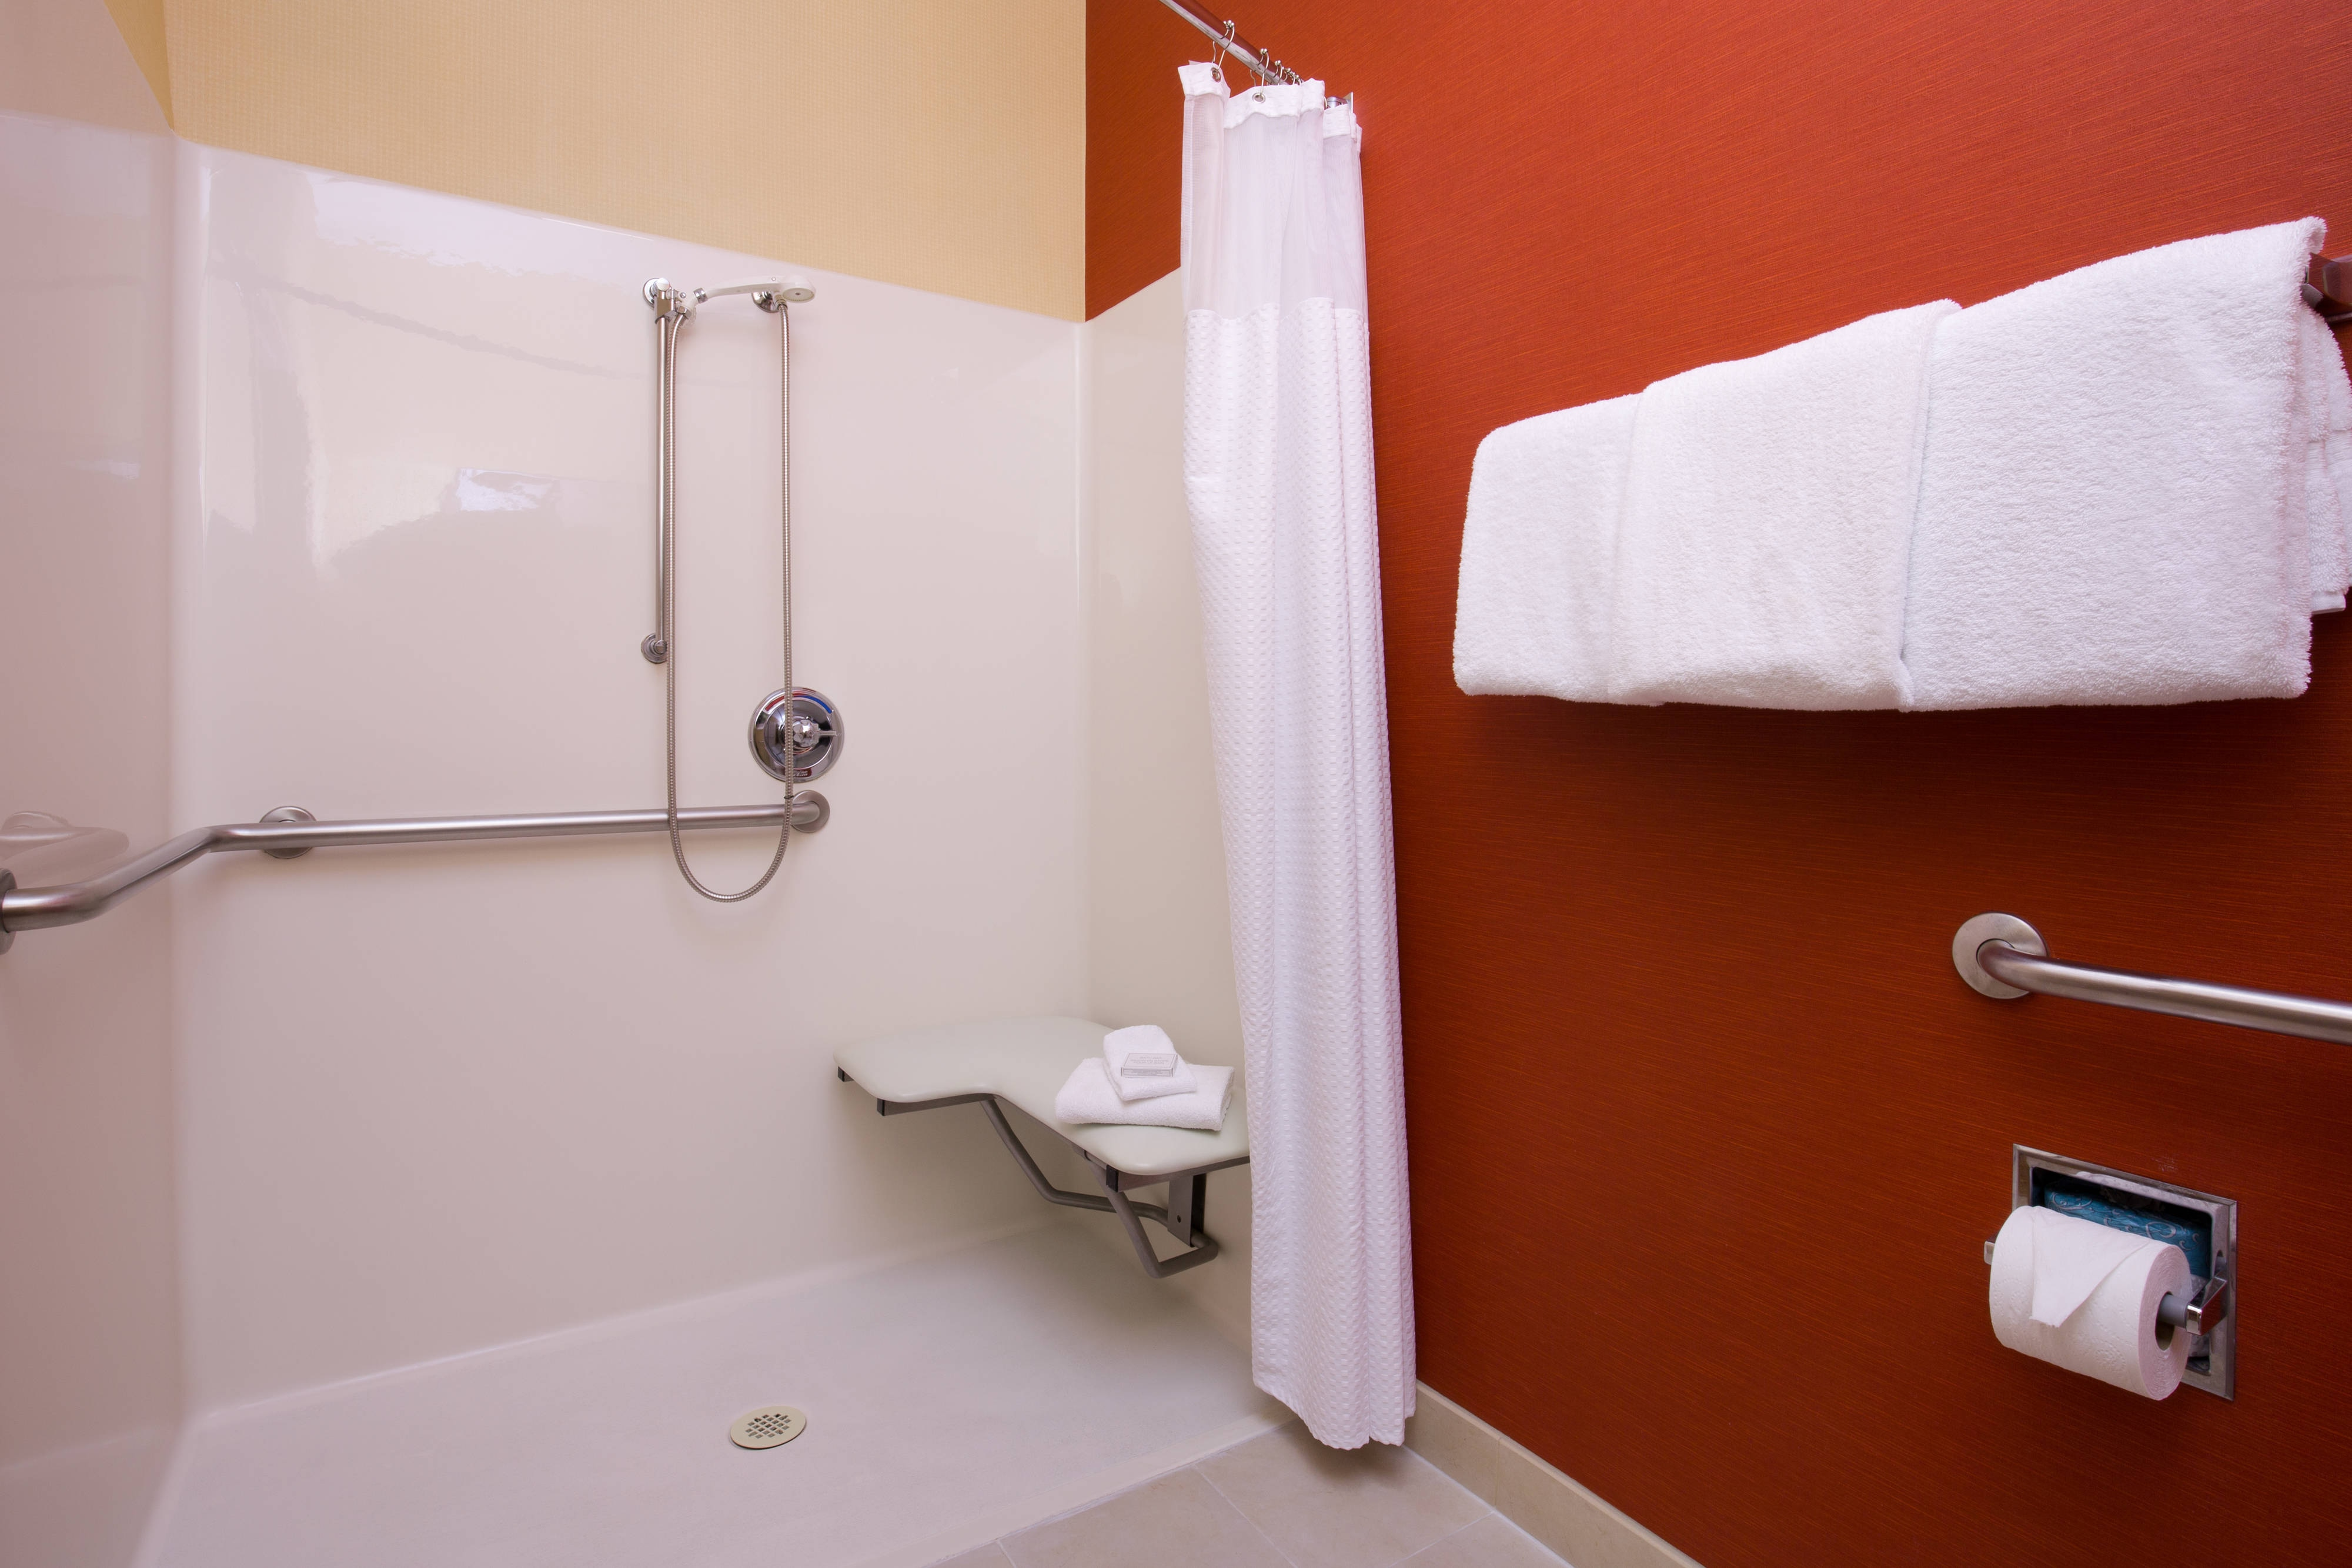 Roseville California Hotel Accessible Shower